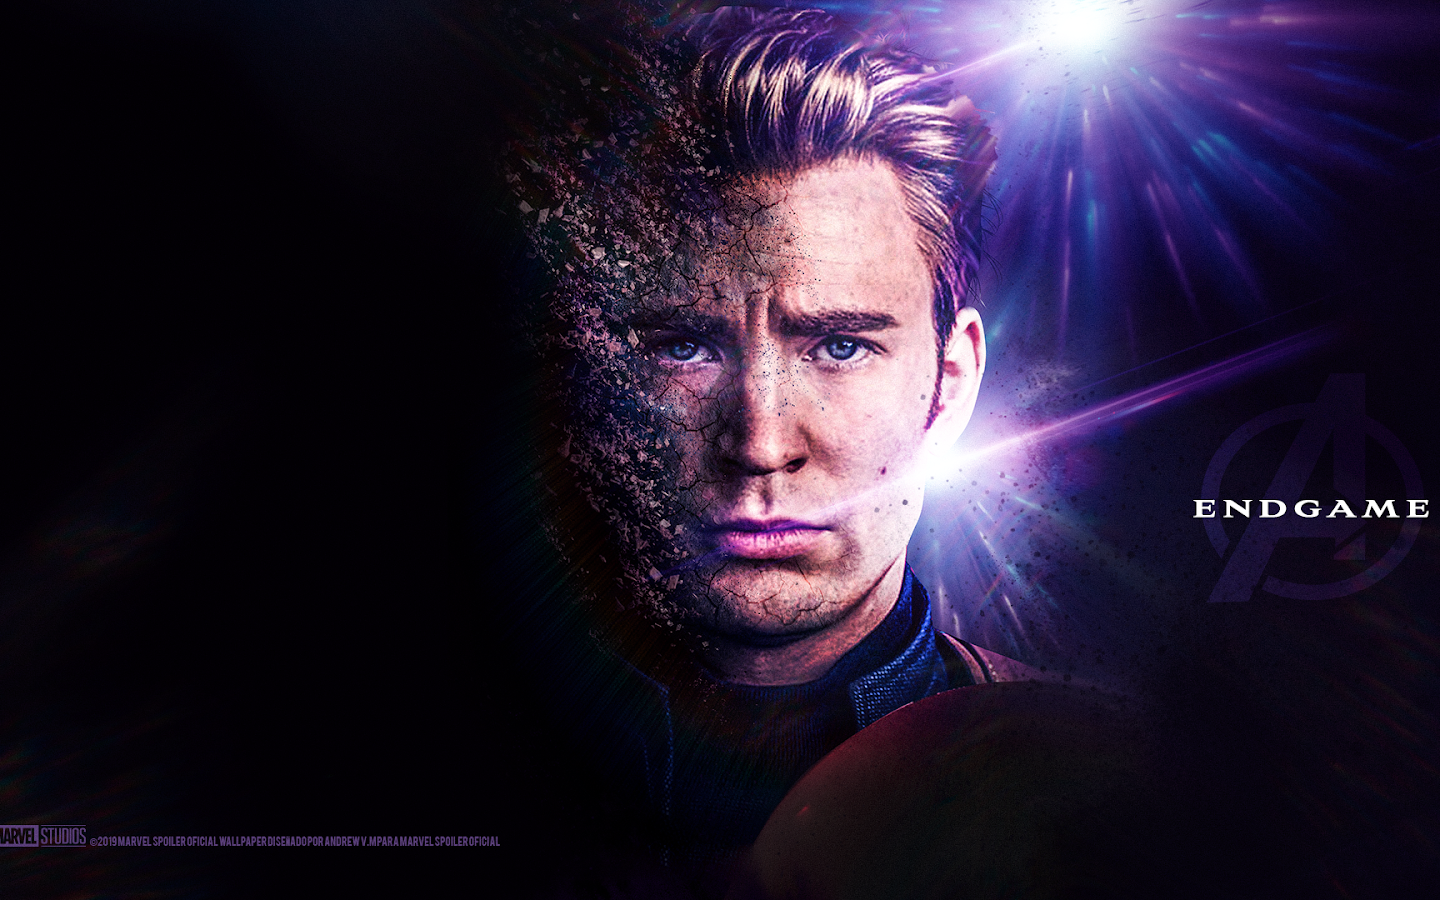 Free Download Avengers End Game Wallpapers In Hd 4k Ft Captain